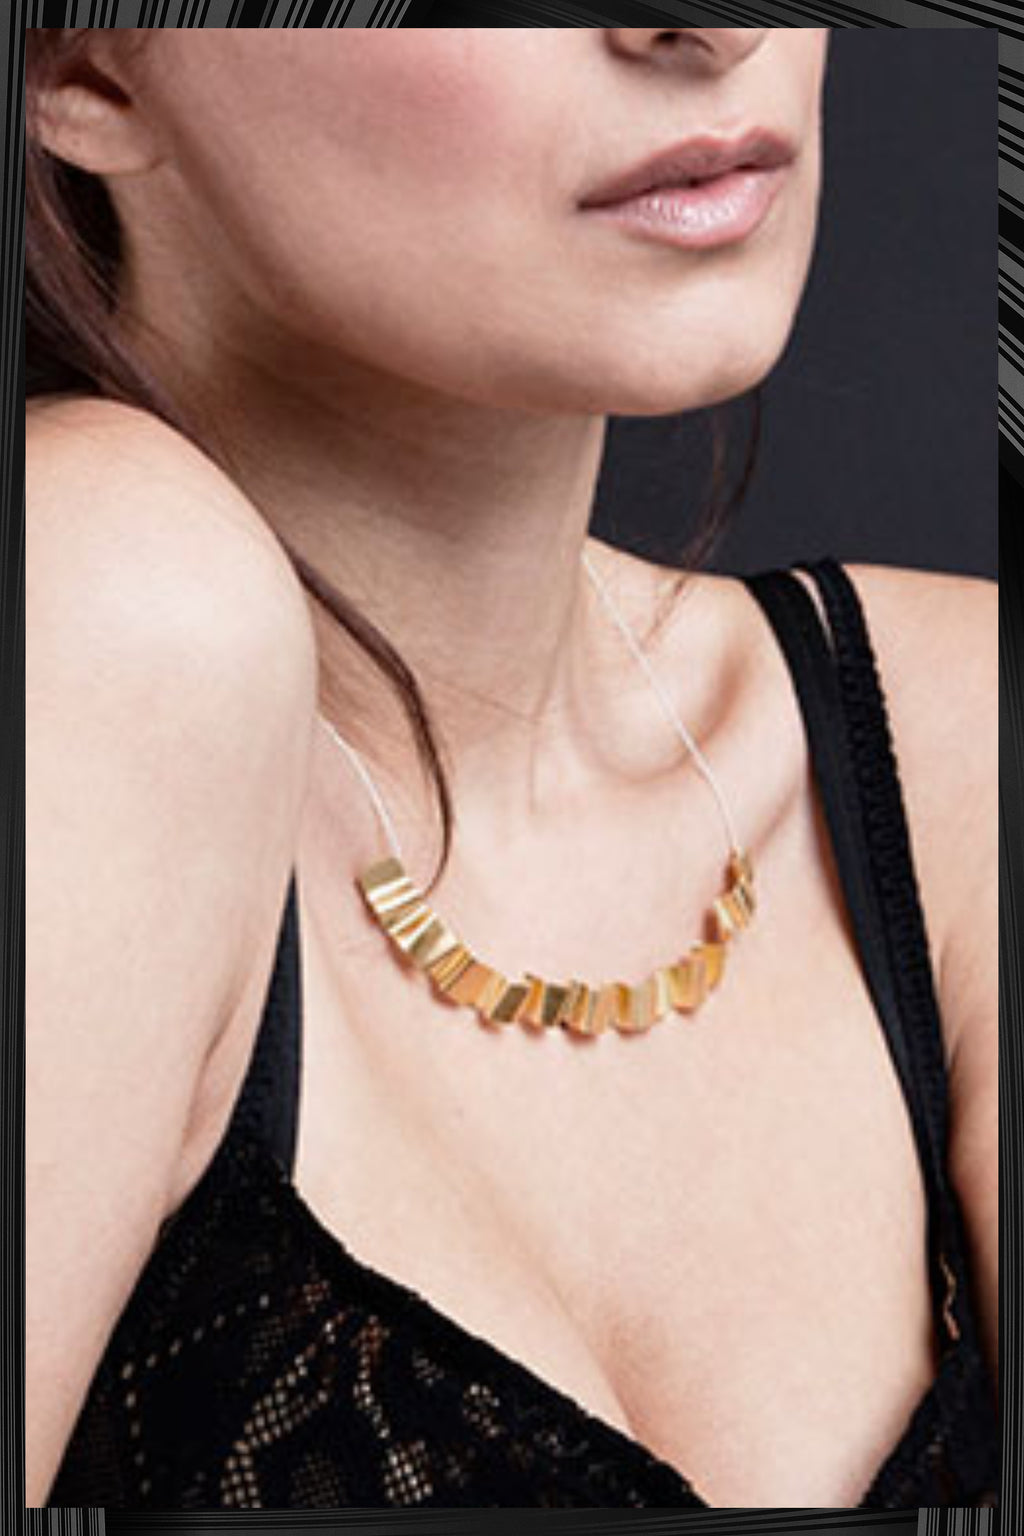 Gold Tagliatella Necklace